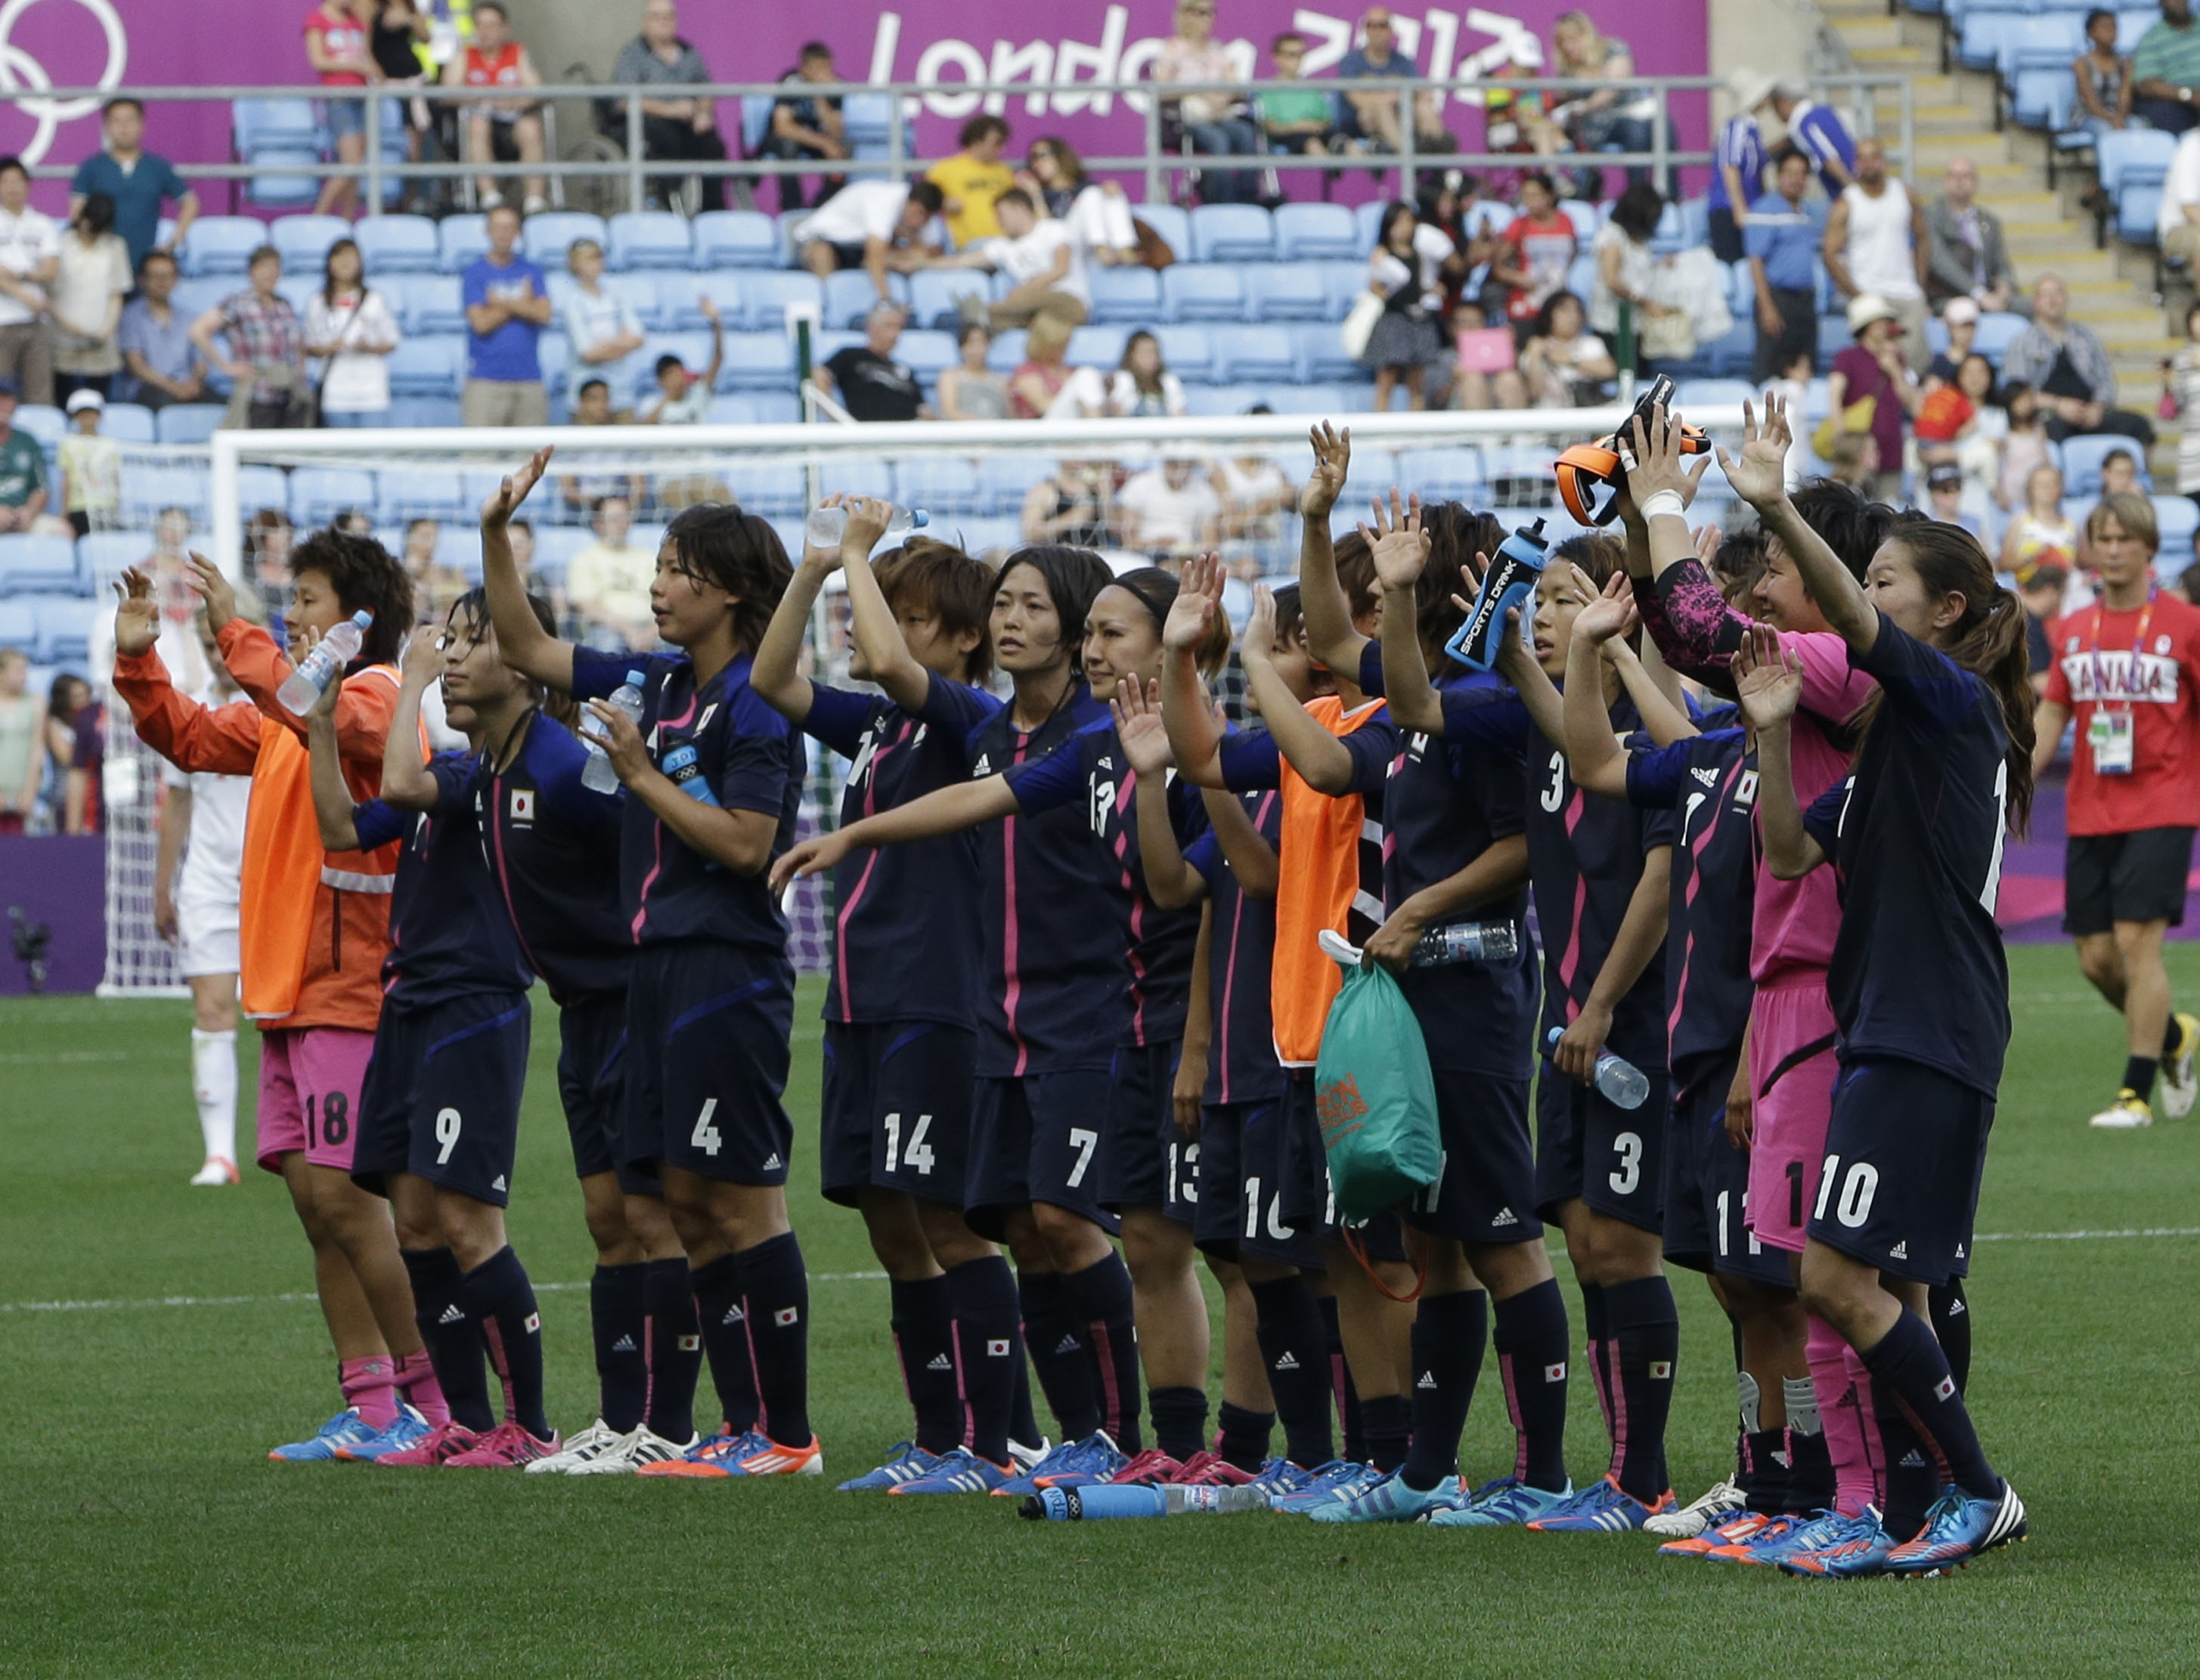 Upgrade deserved: The Japanese women's soccer team acknowledge their fans after defeating Canada in their first match at the London 2012 Olympics, July 25, 2012. | AP